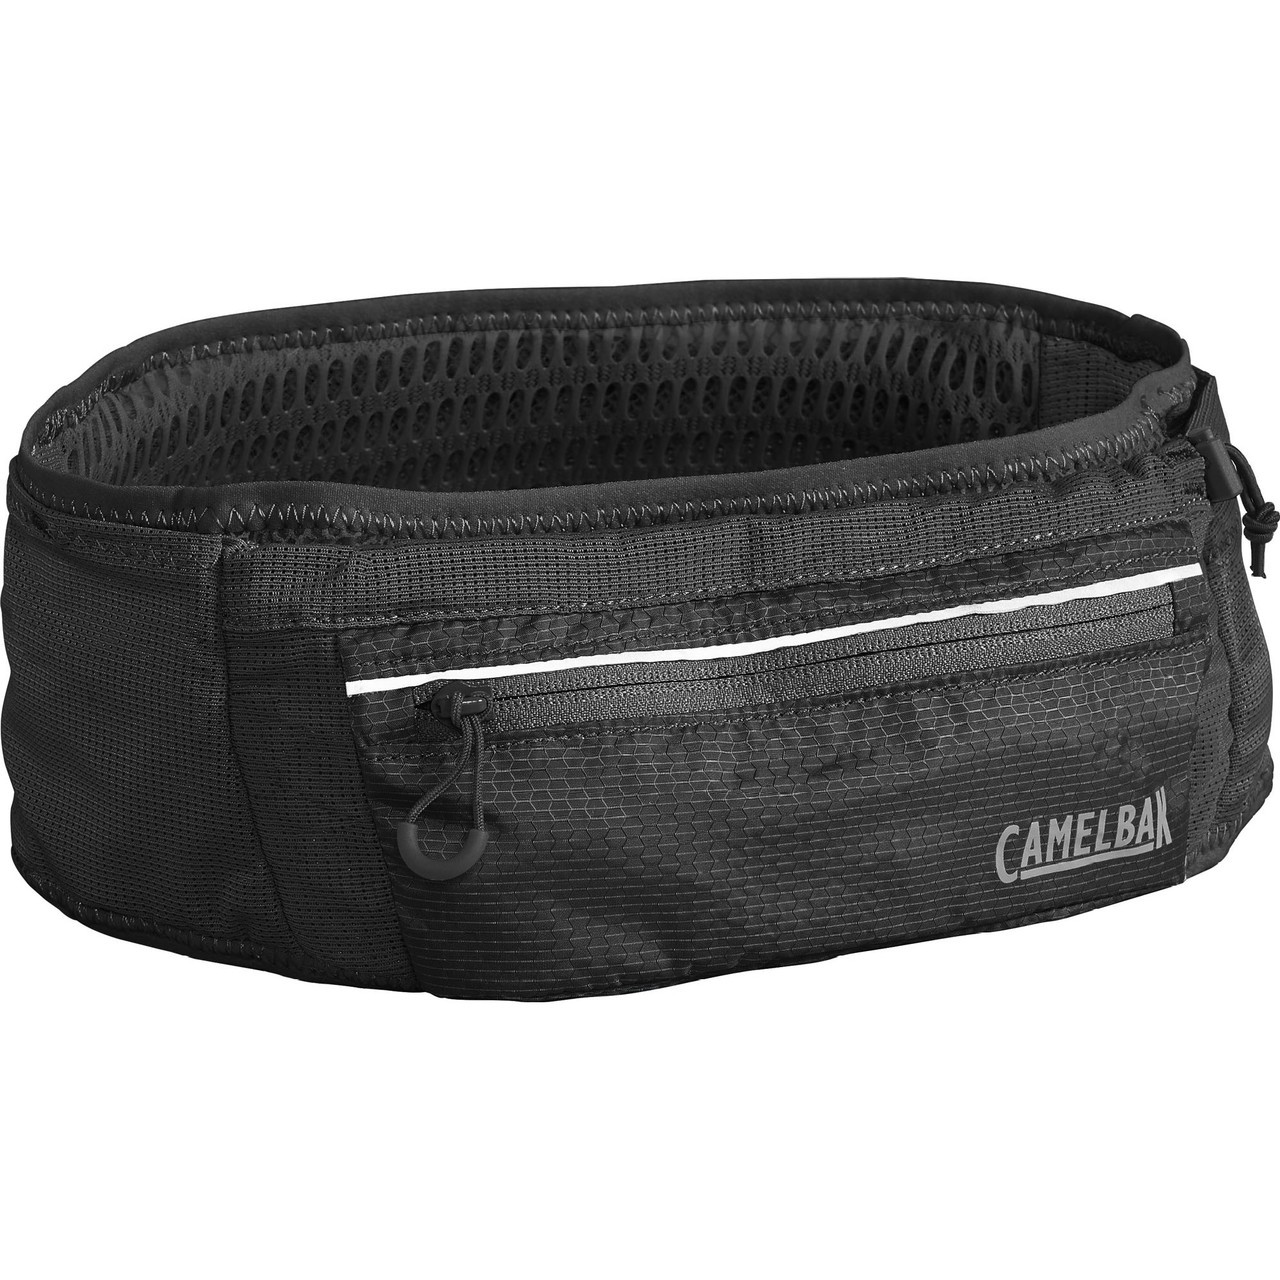 Camelbak Ultra Hydration Belt 17 oz. - 2019 price